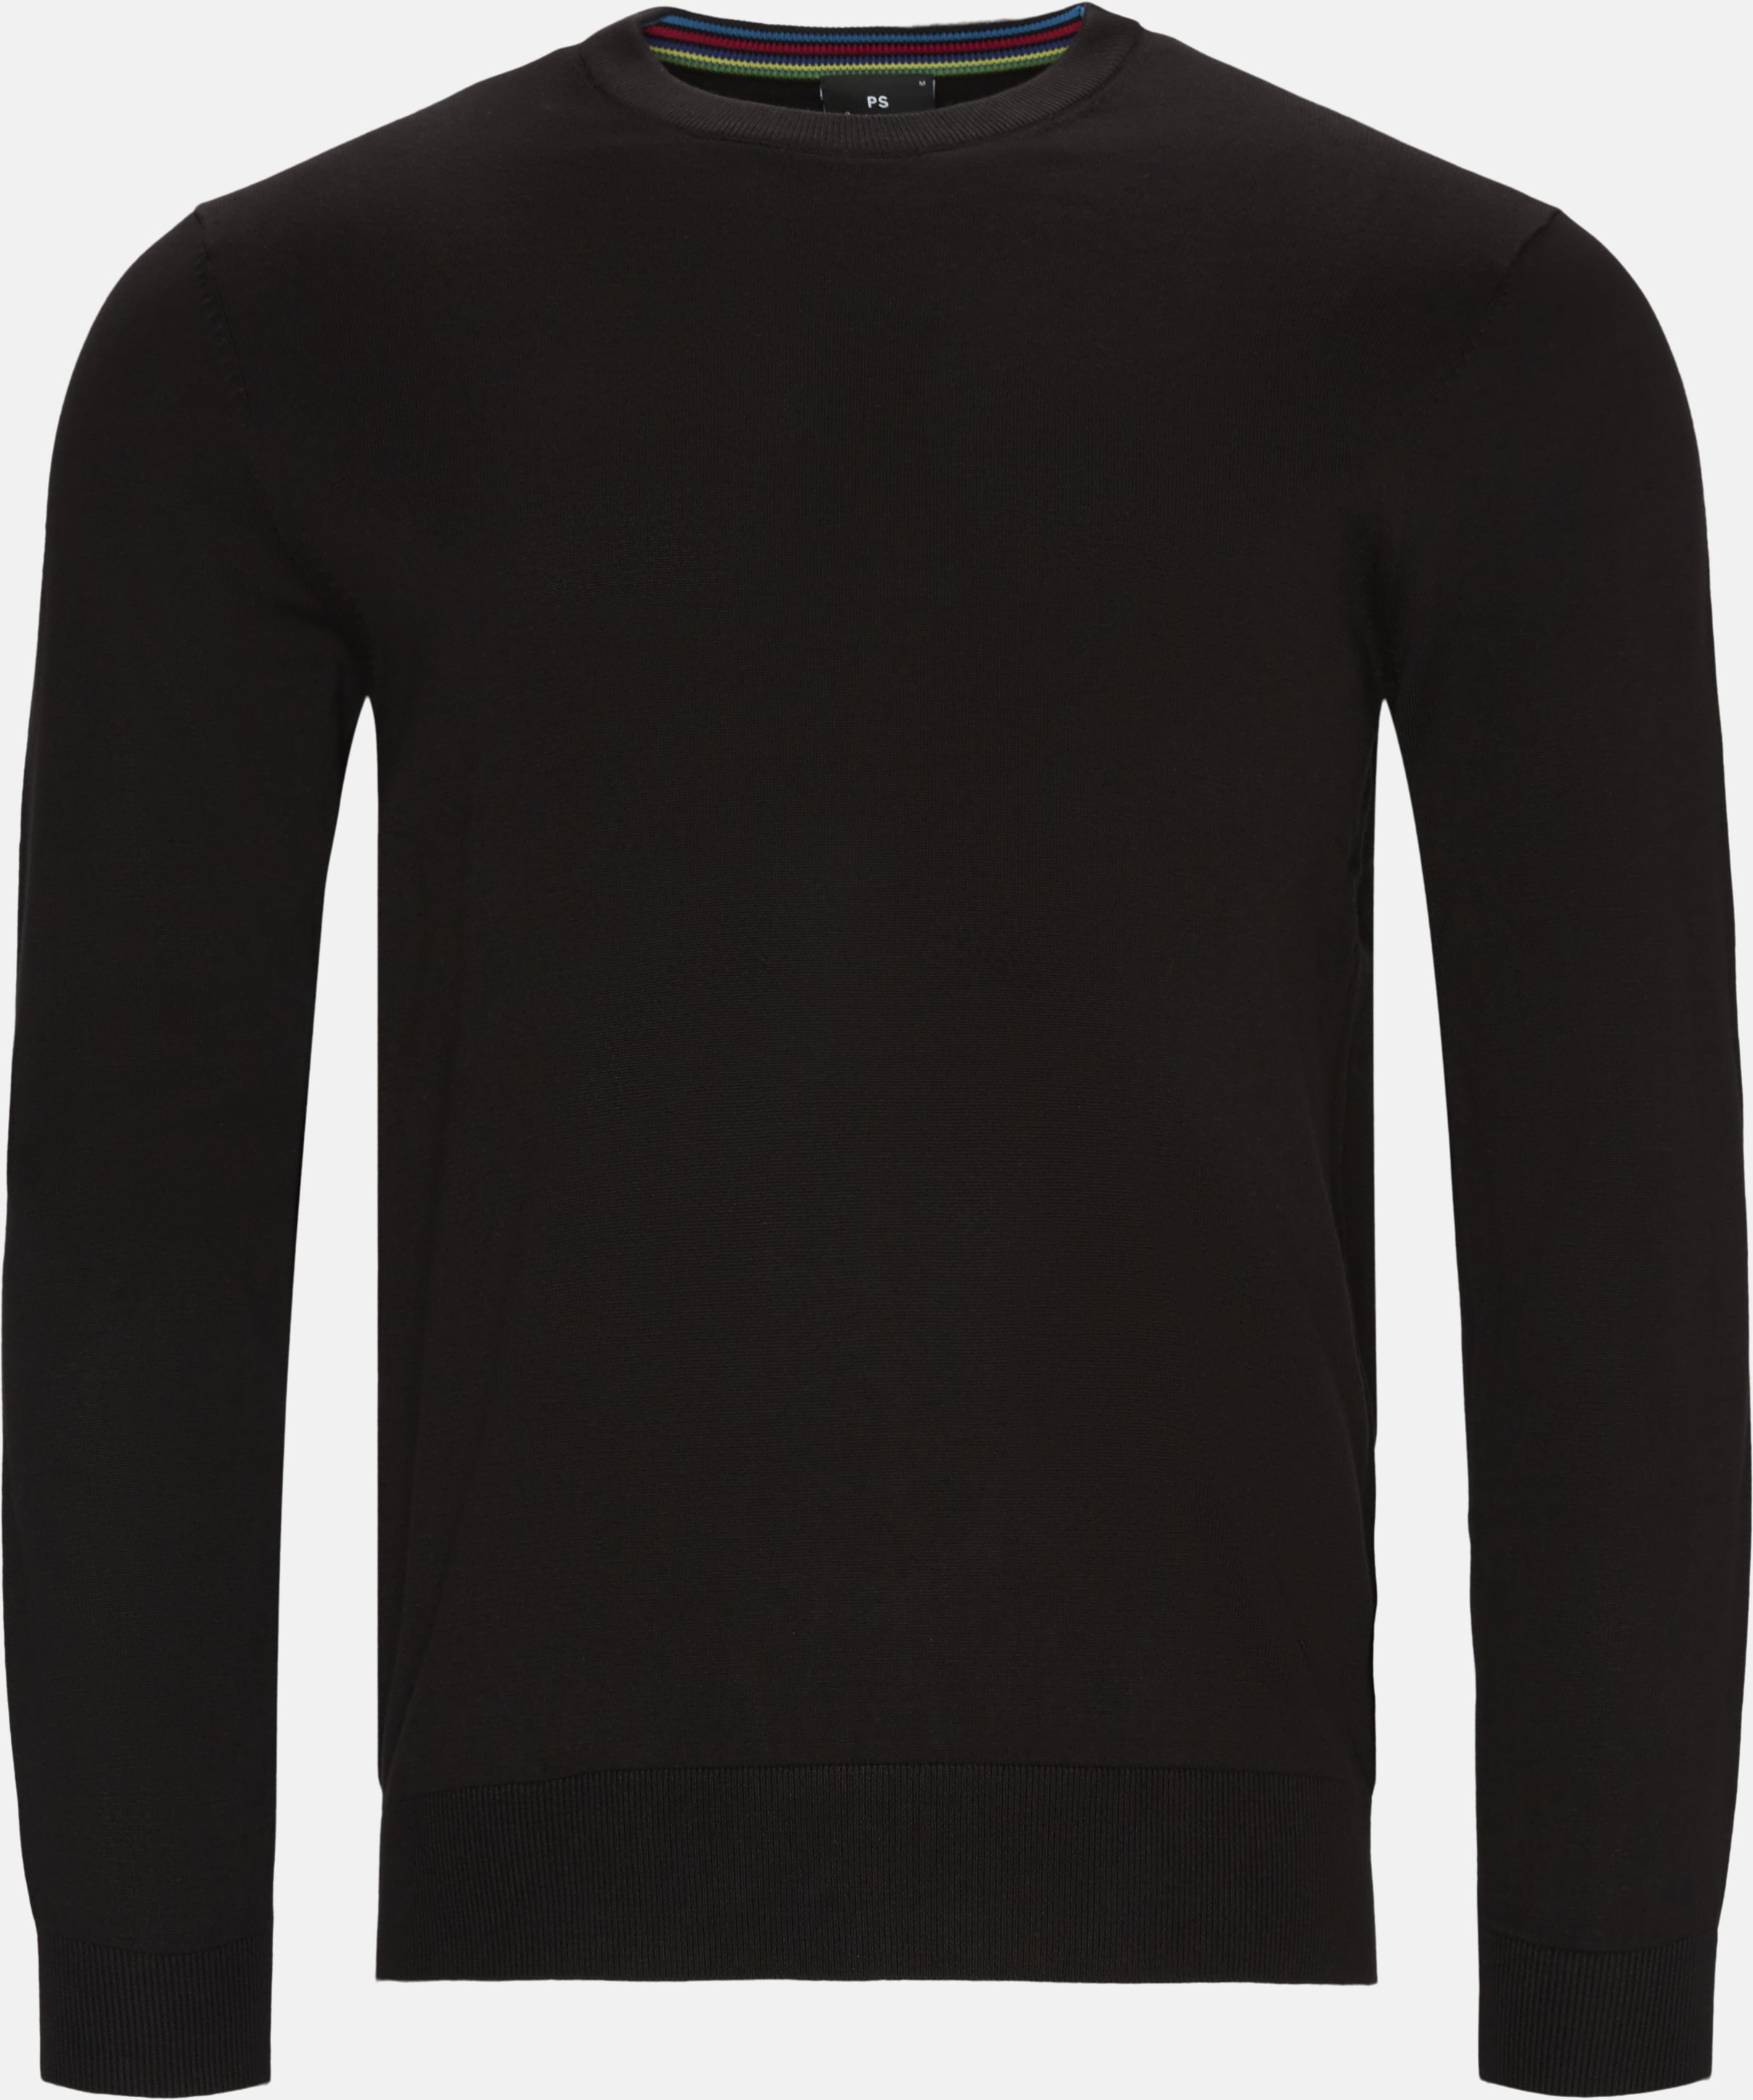 Knitwear - Regular fit - Black